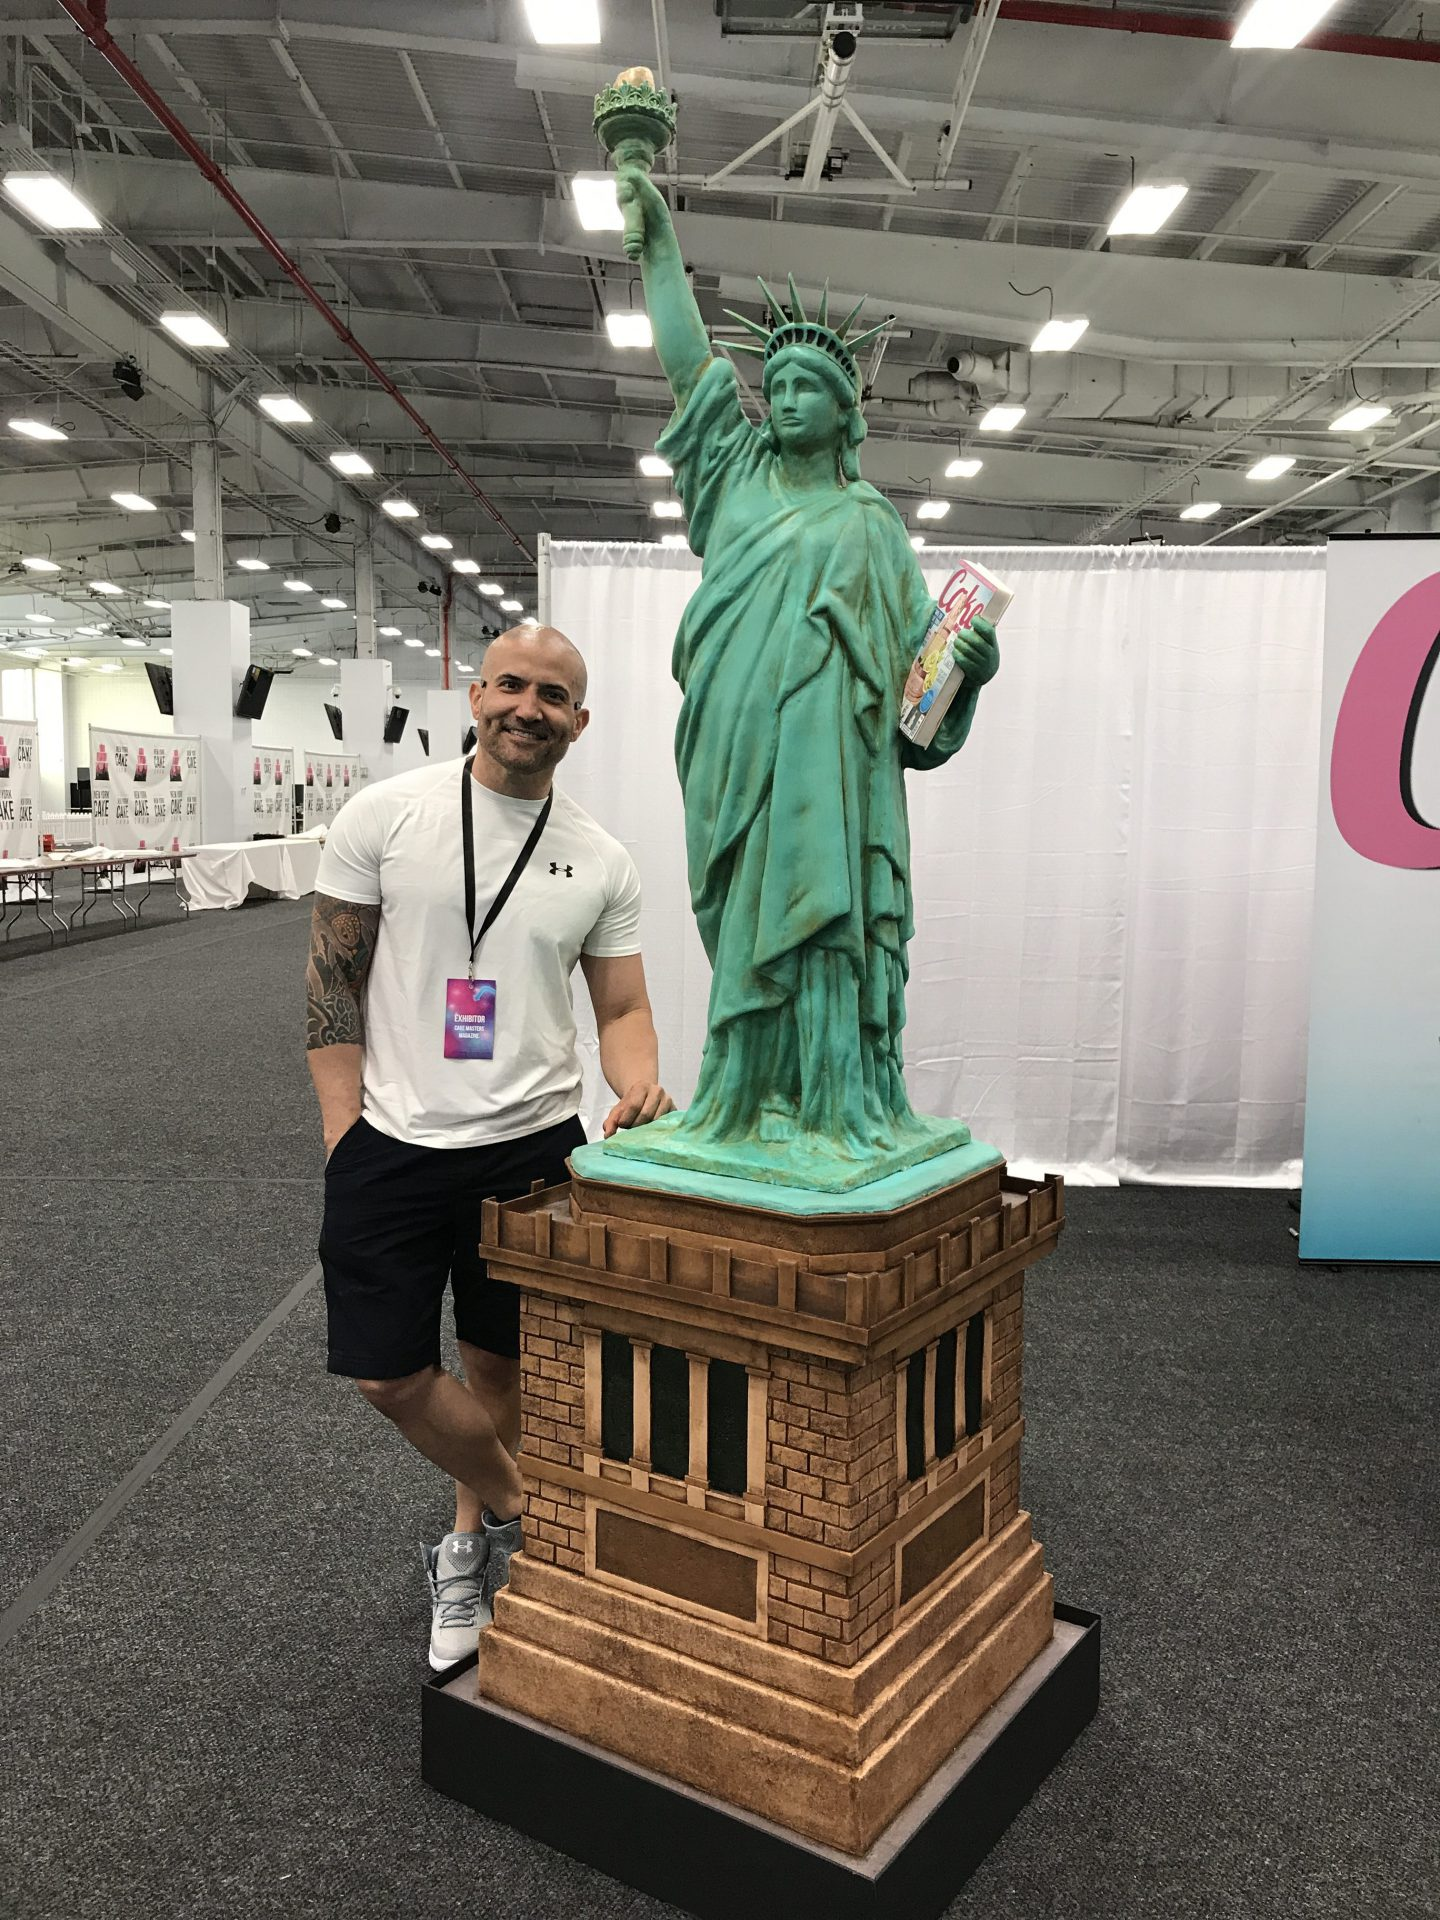 Statue of Liberty by Benny Rivera